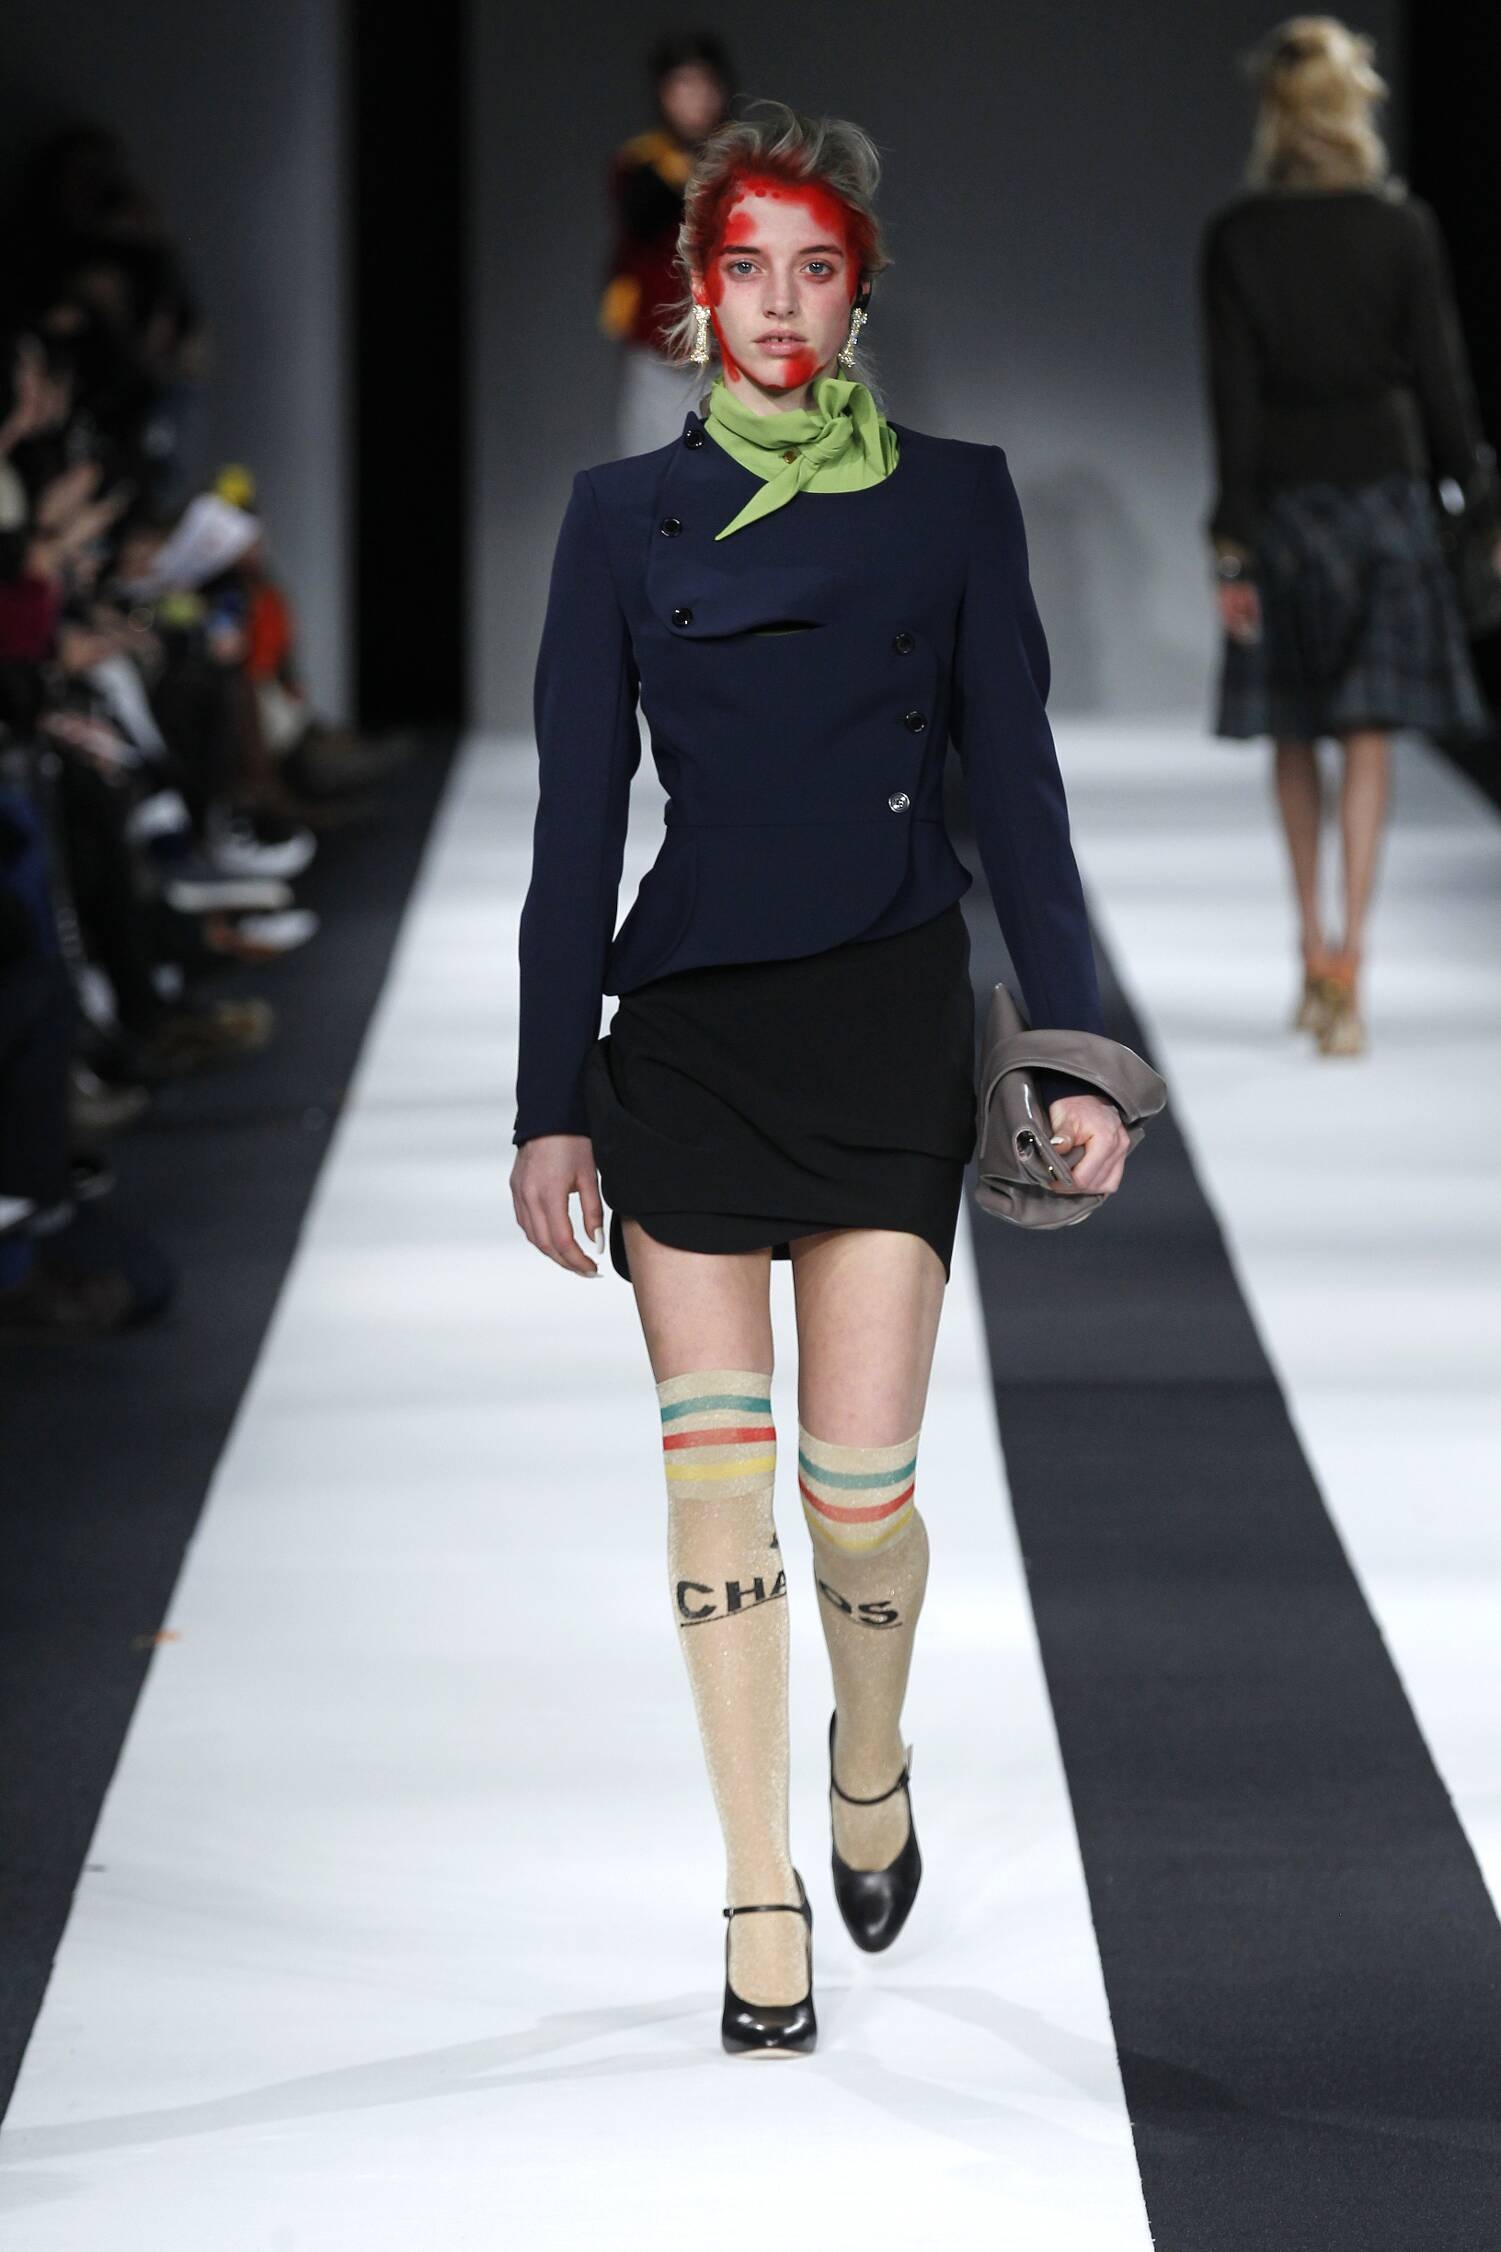 Fashion Woman Model Vivienne Westwood Red Label Collection Catwalk 2015